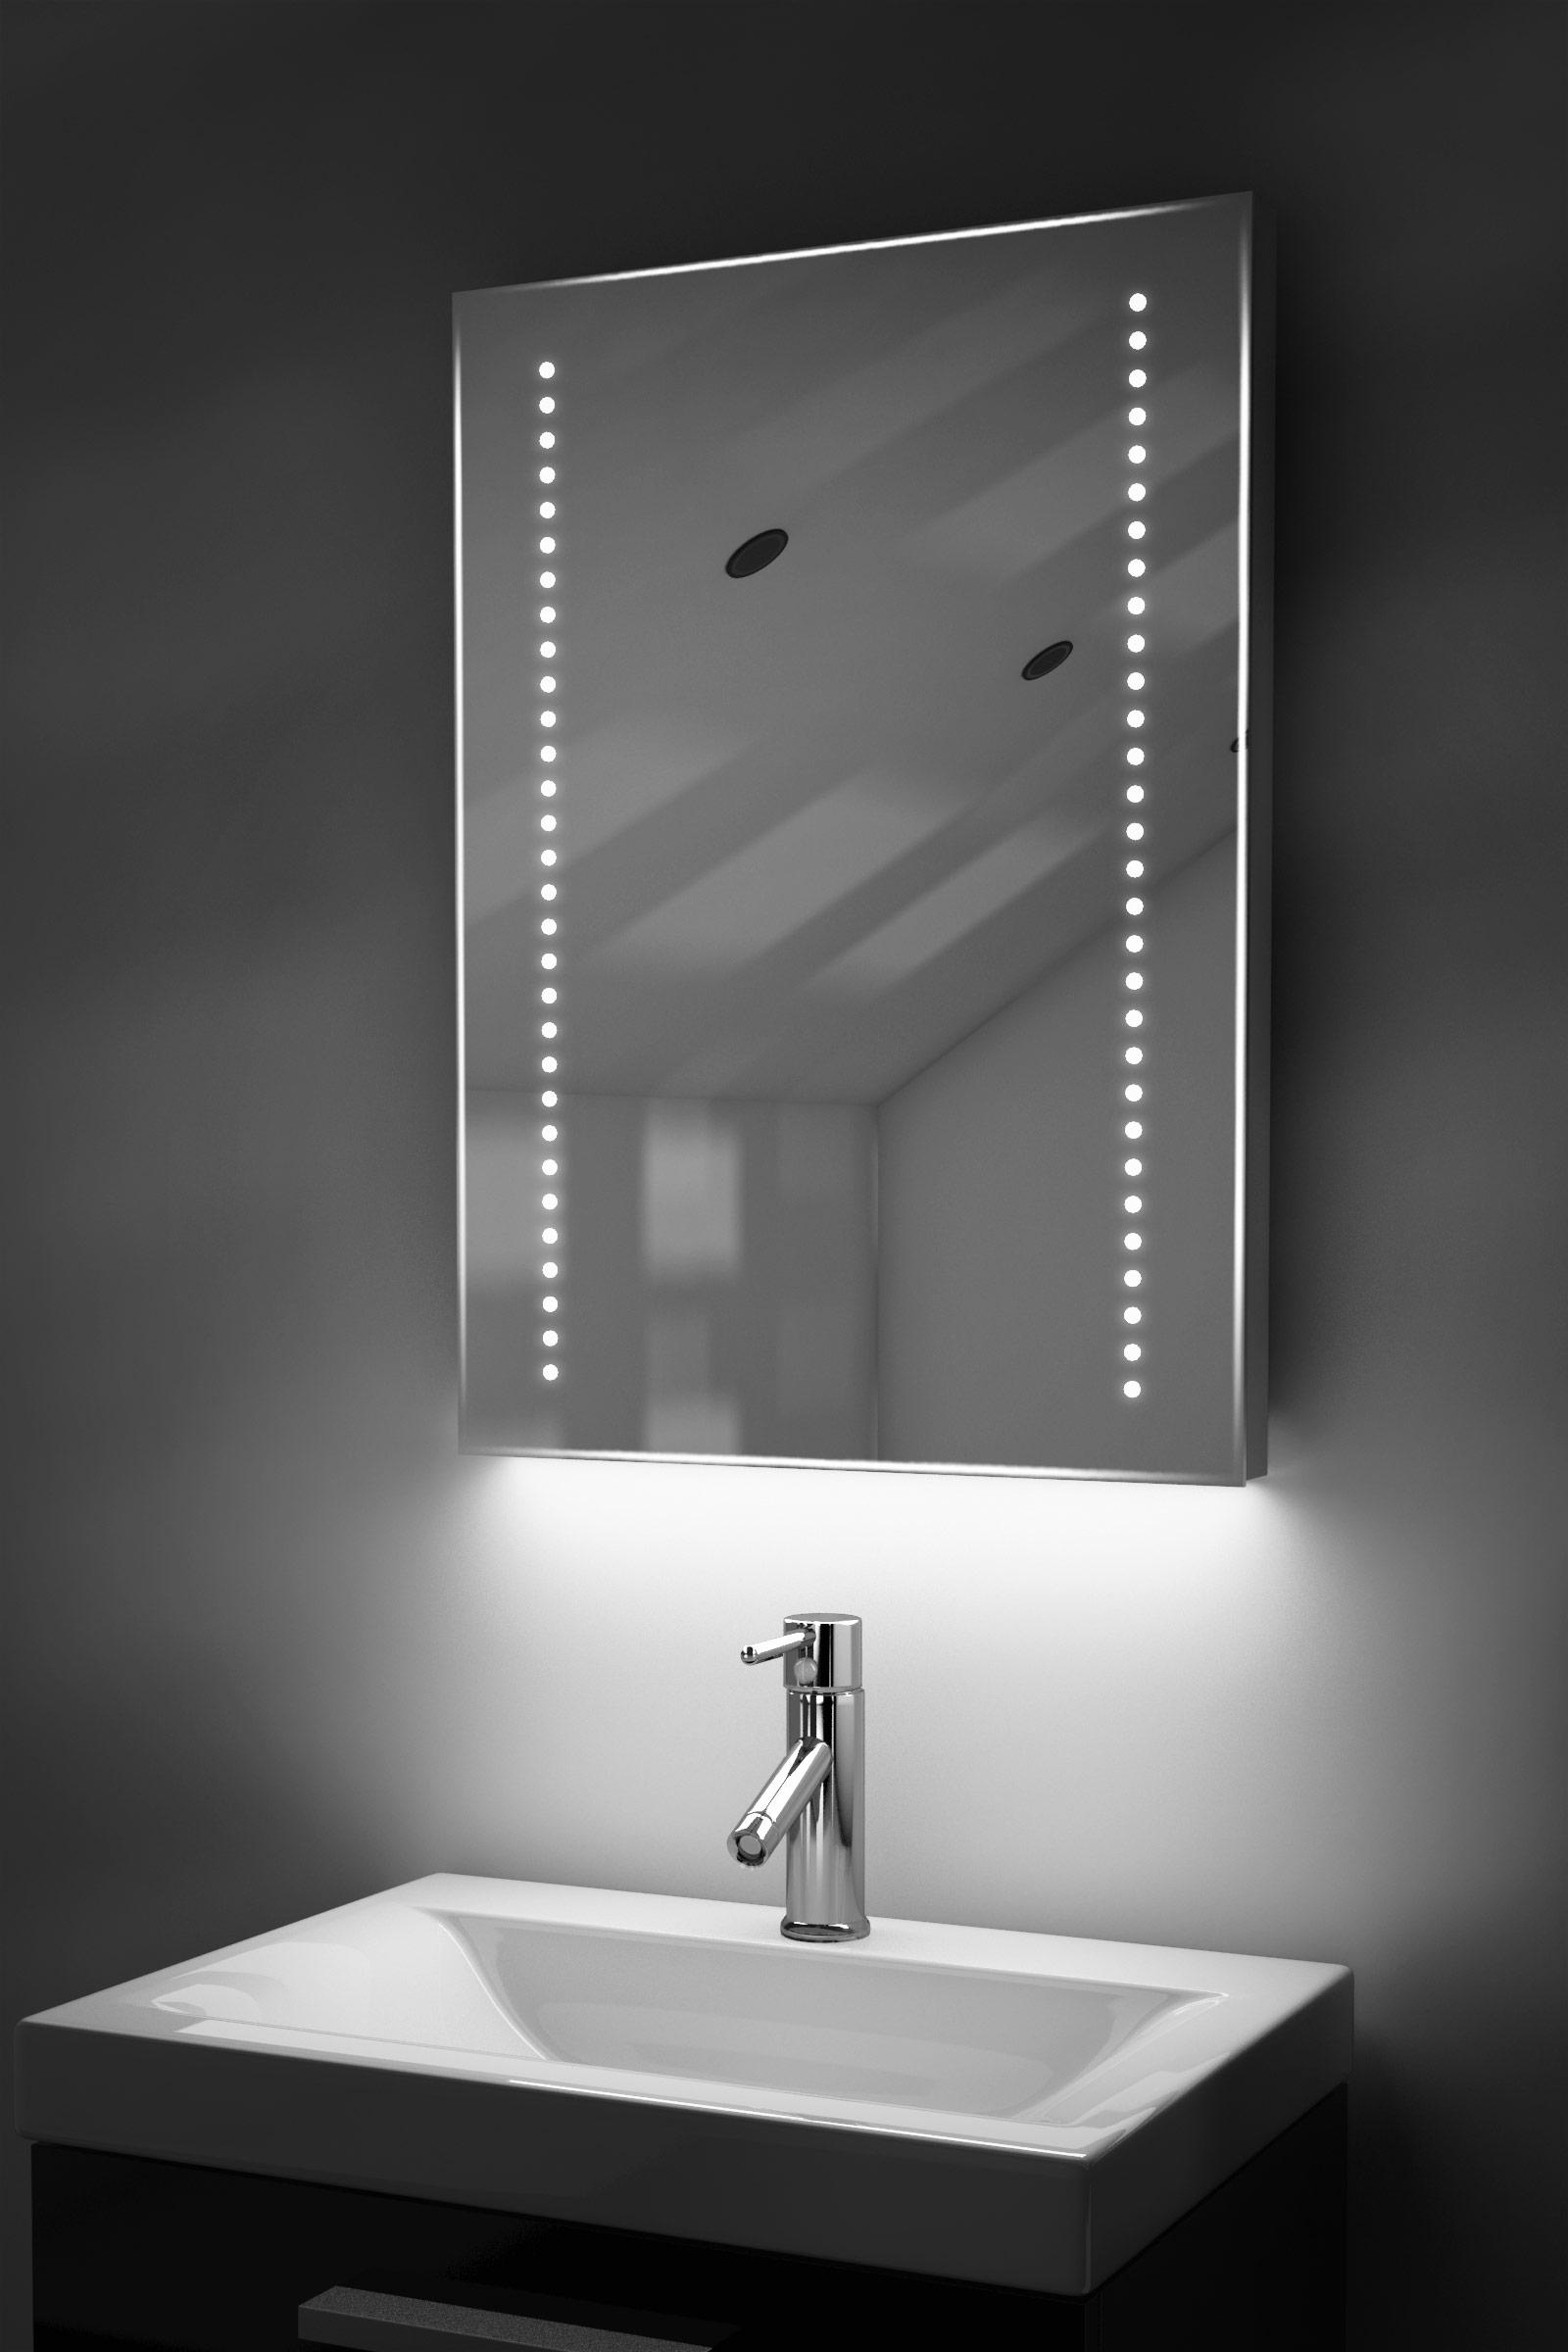 Bathroom Illuminated Mirror Cabinet Details About Ambient Ultra Slim Led Bathroom Mirror With Demister Pad Sensor K10